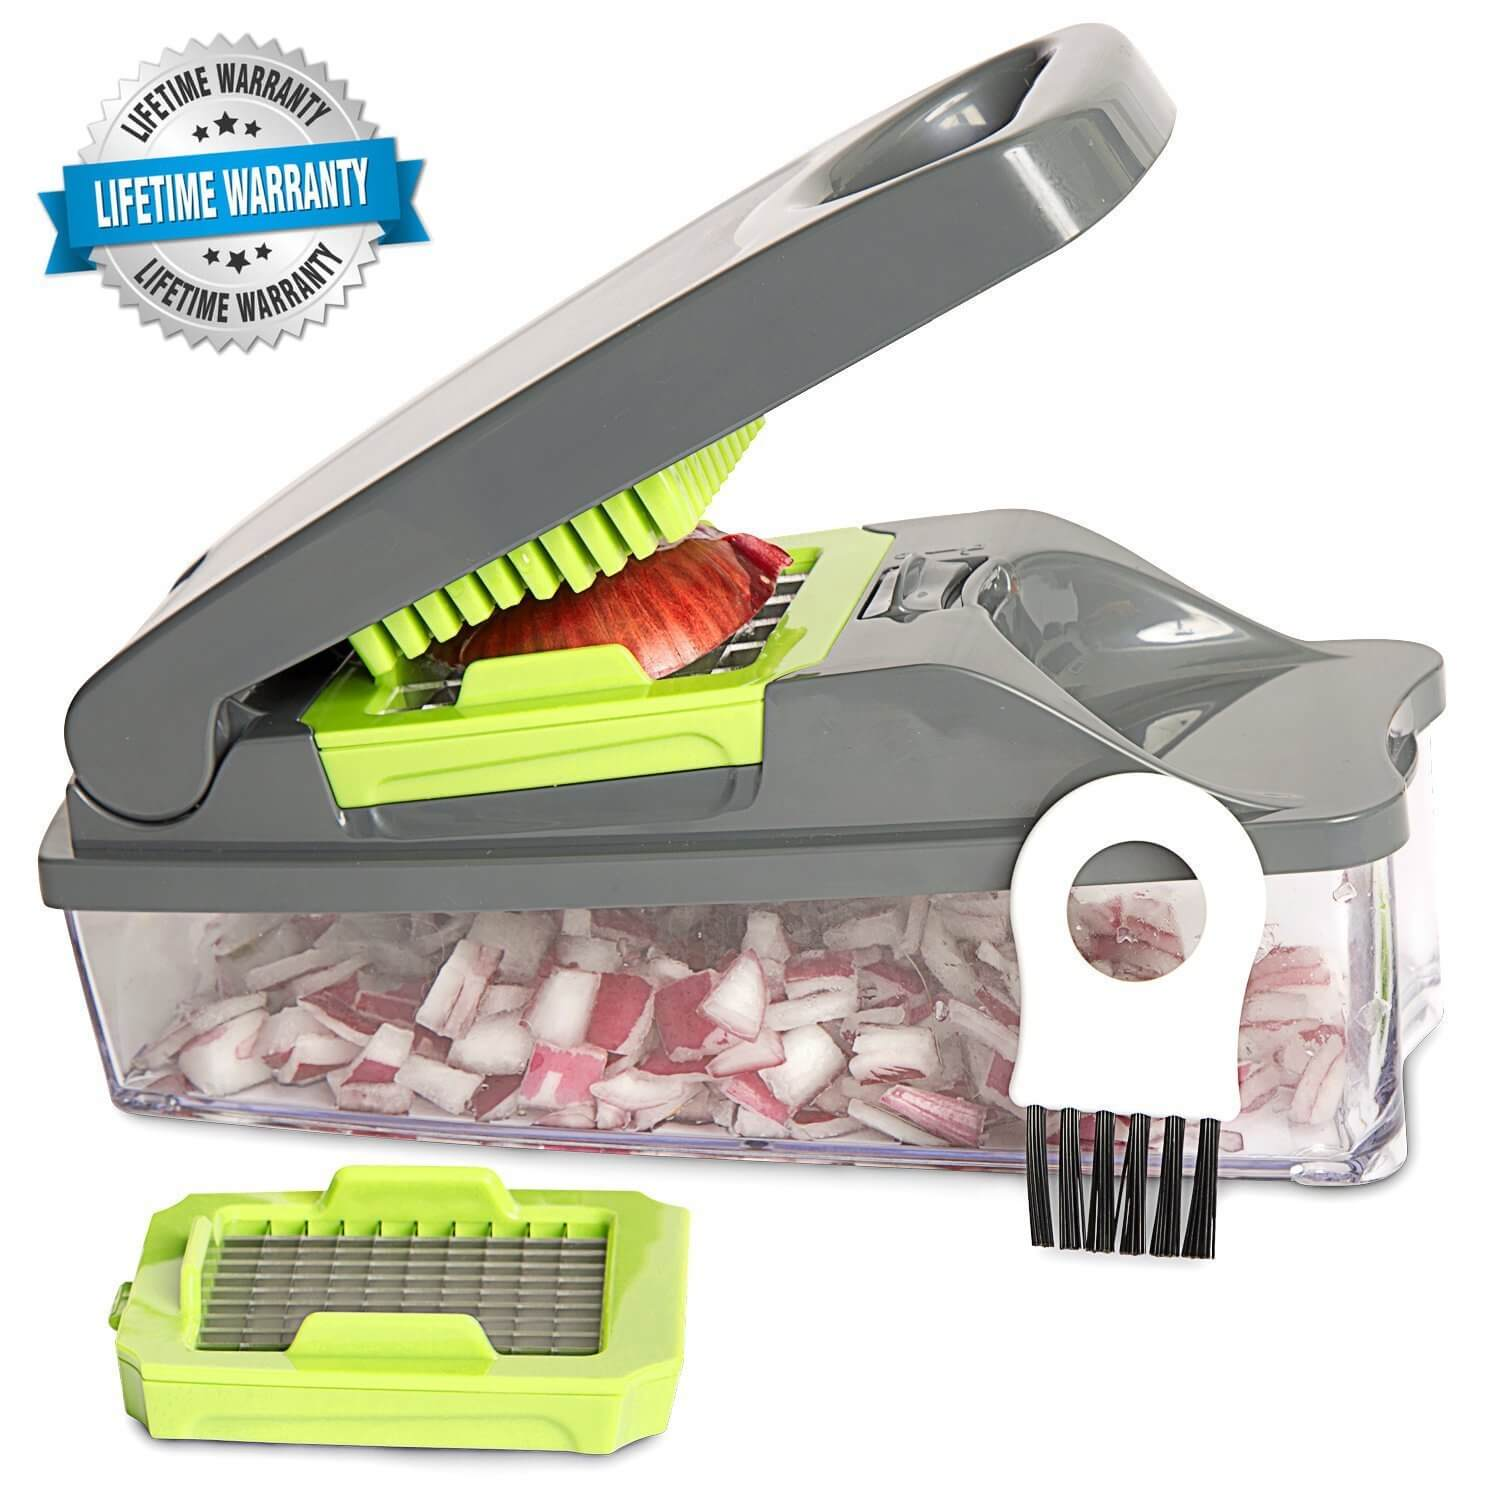 Onion Chopper Pro Vegetable Chopper by Mueller